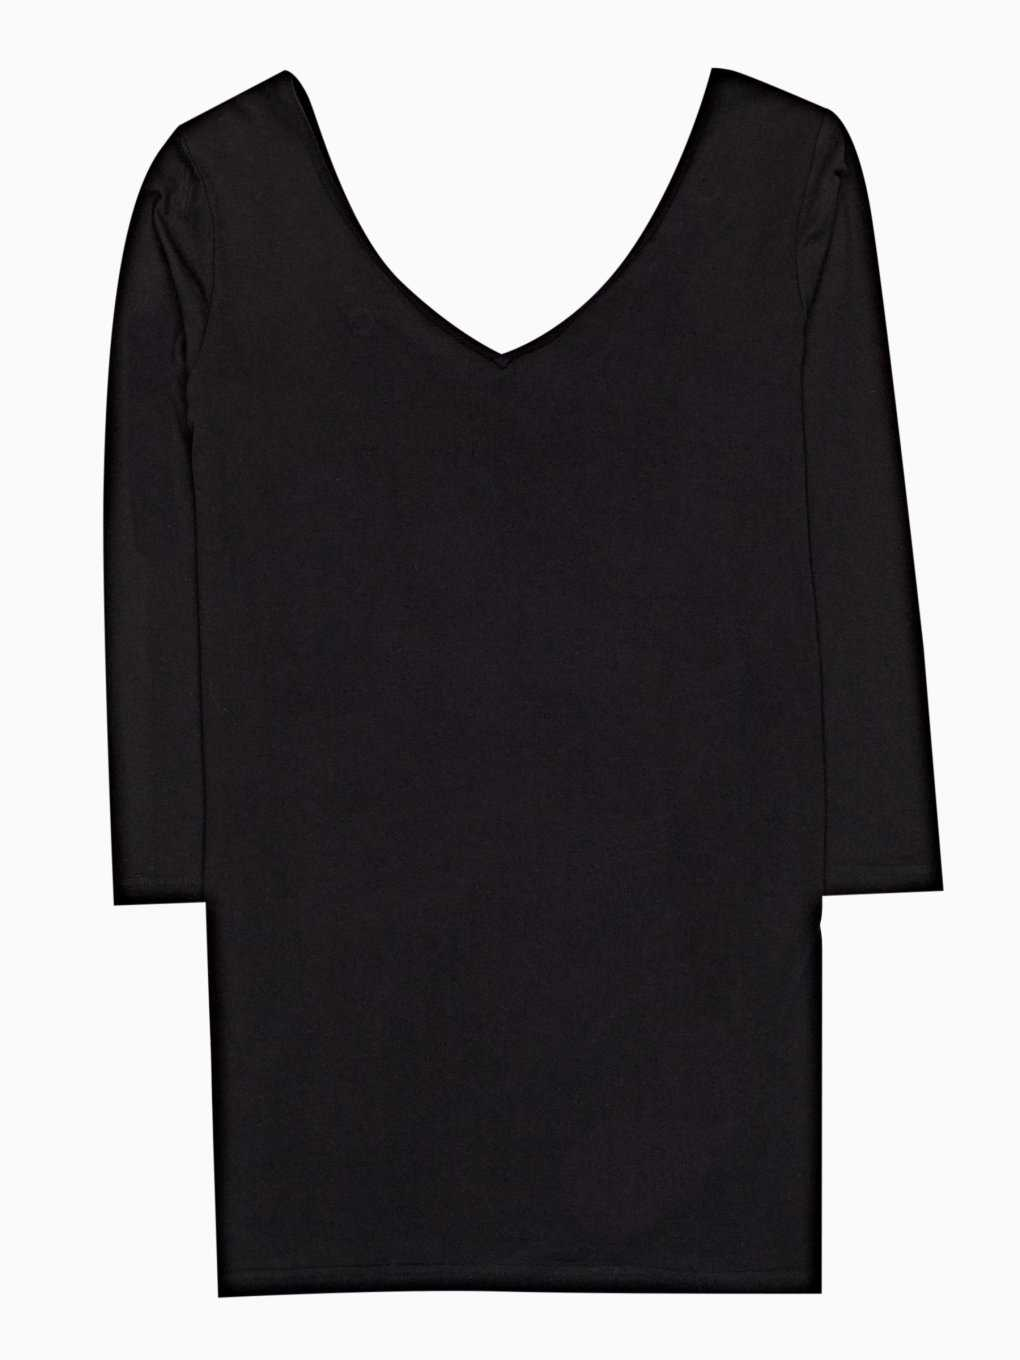 Viscose top with ribbon detail